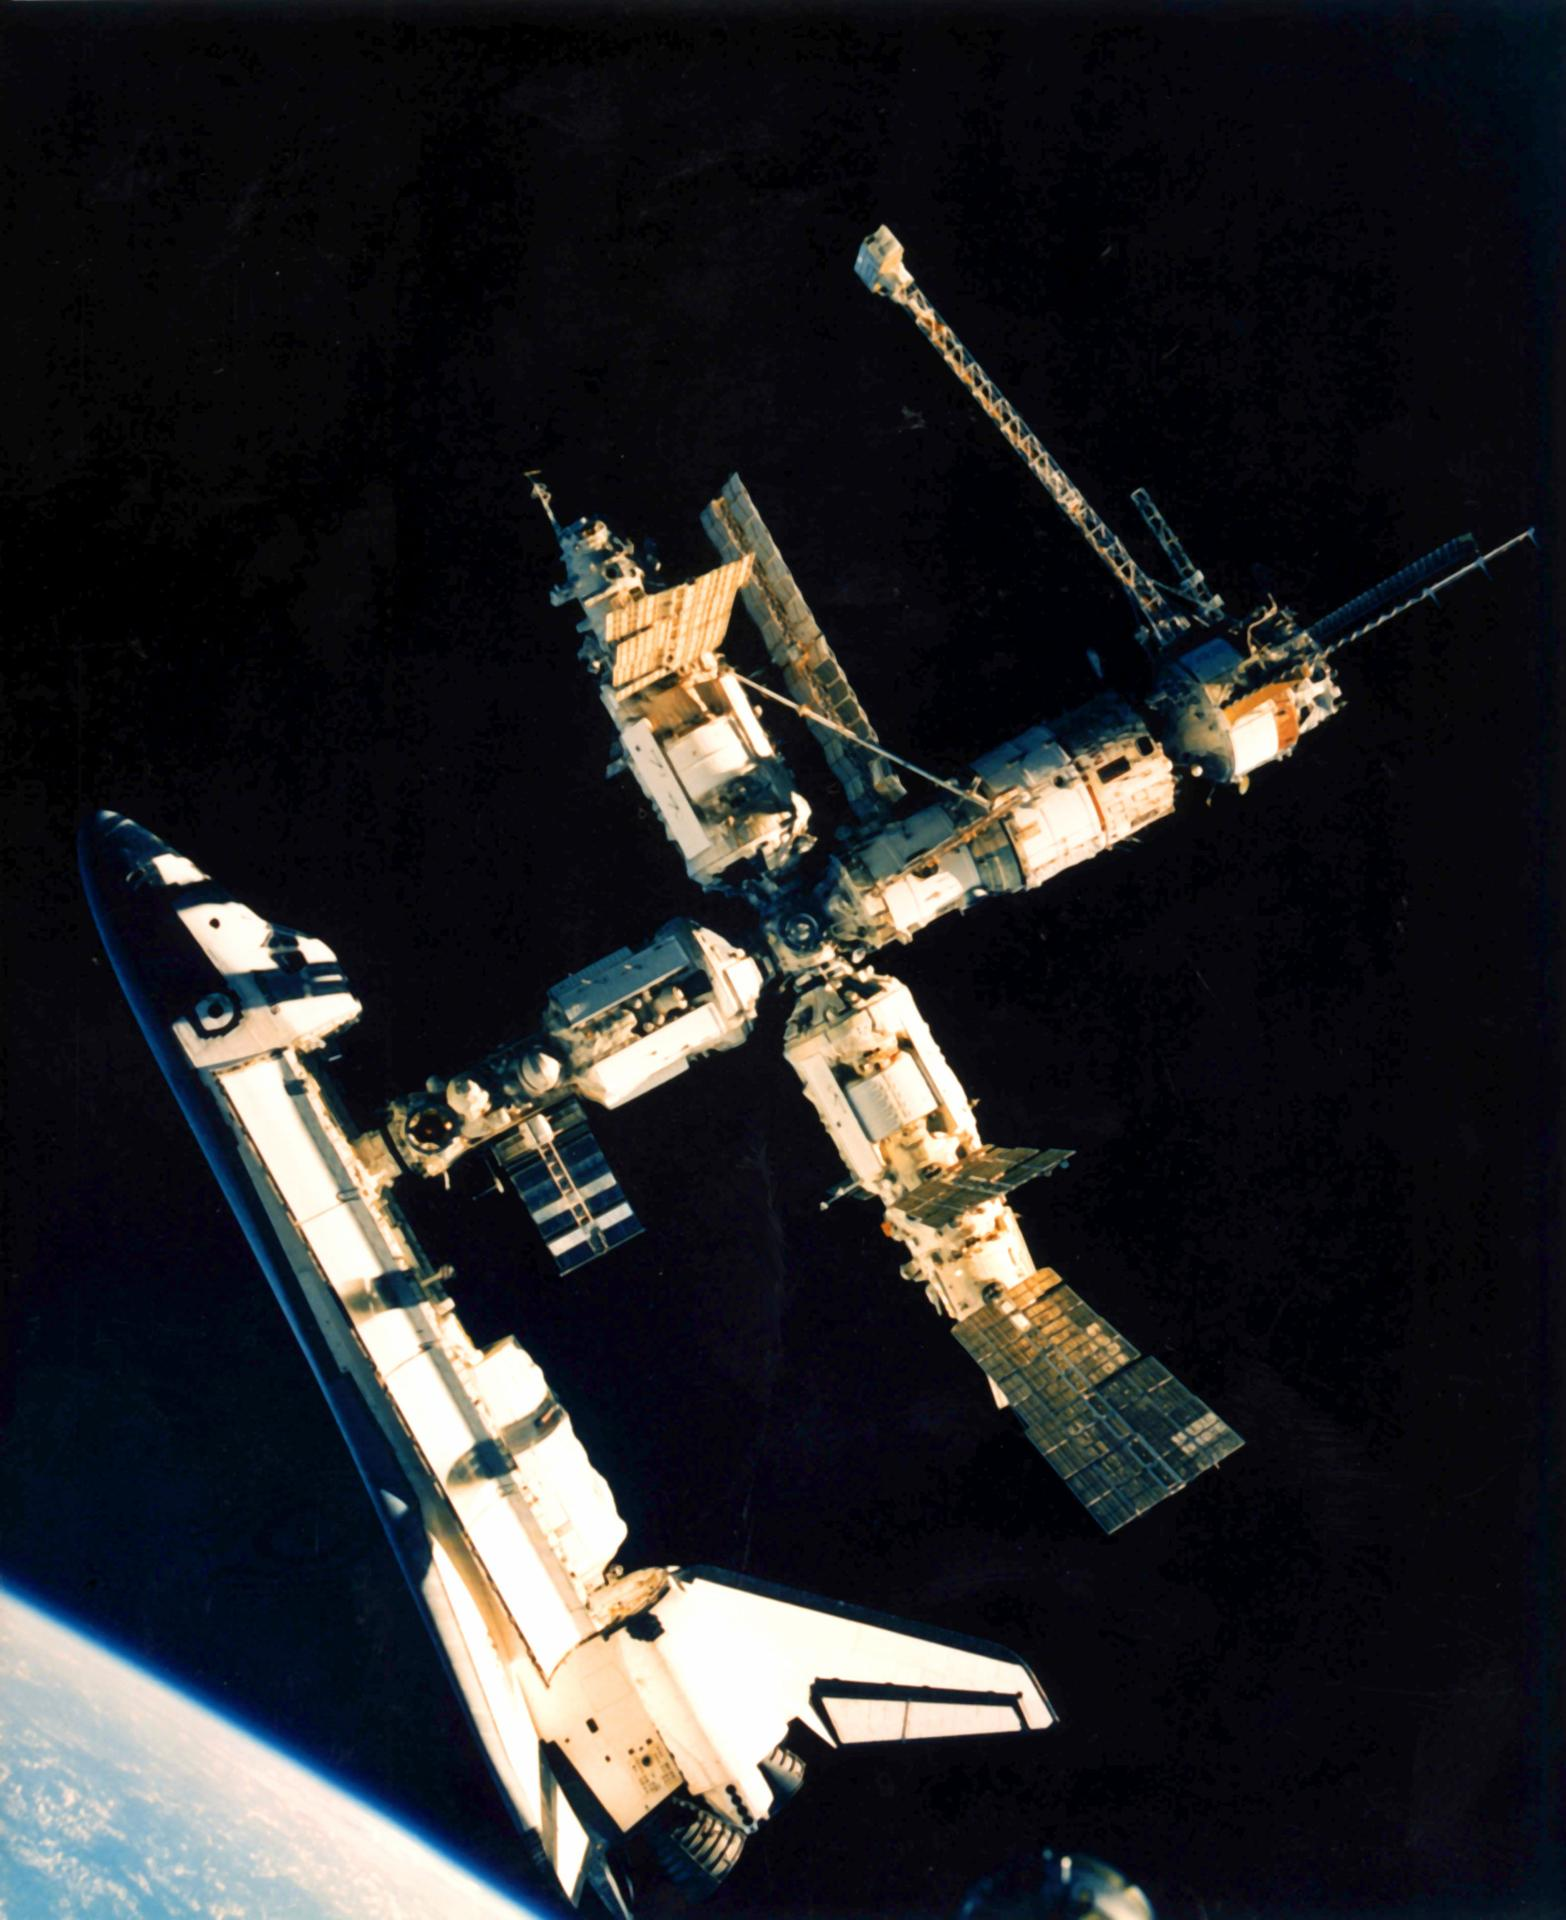 Space shuttle Atlantis docked with space station Mir